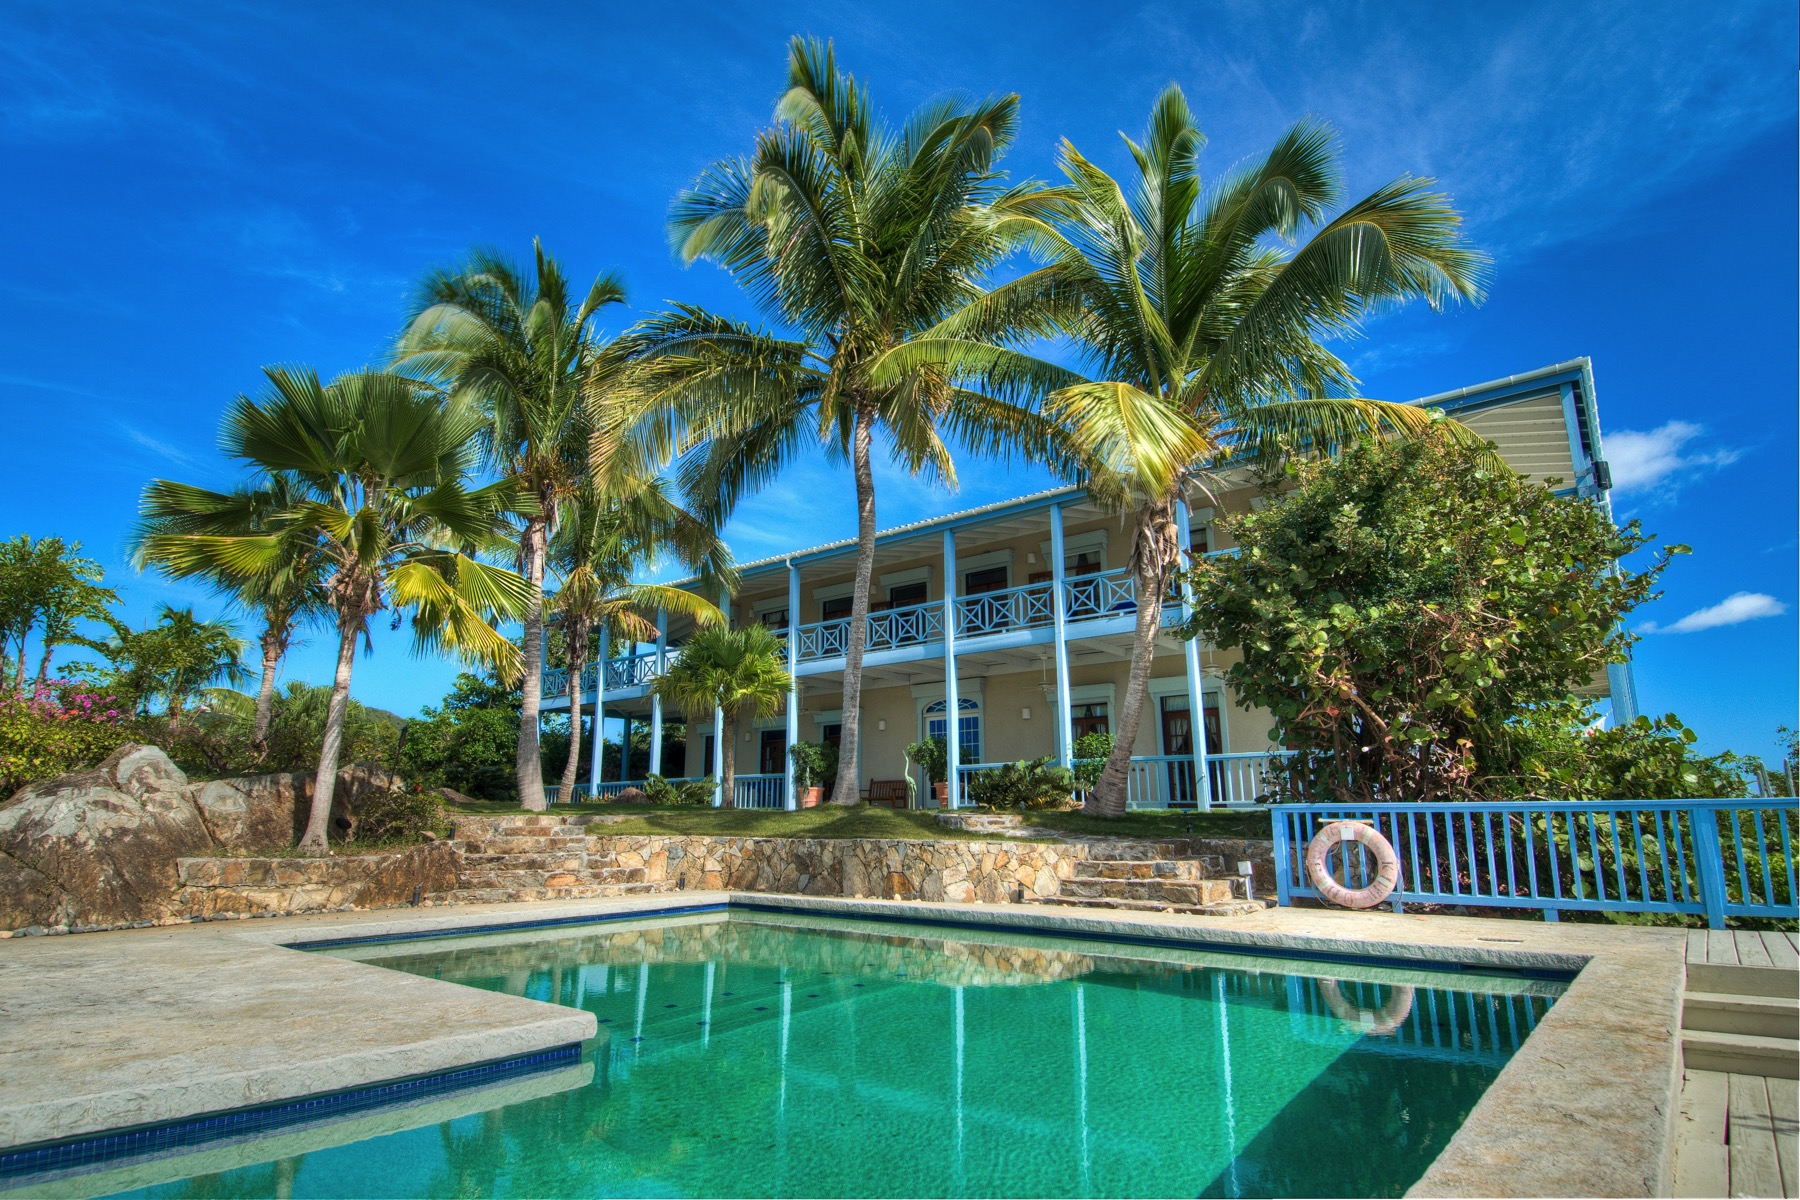 Single Family Home for Sale at Frenchman's Lookout Frenchmans Cay, Frenchman's Cay British Virgin Islands